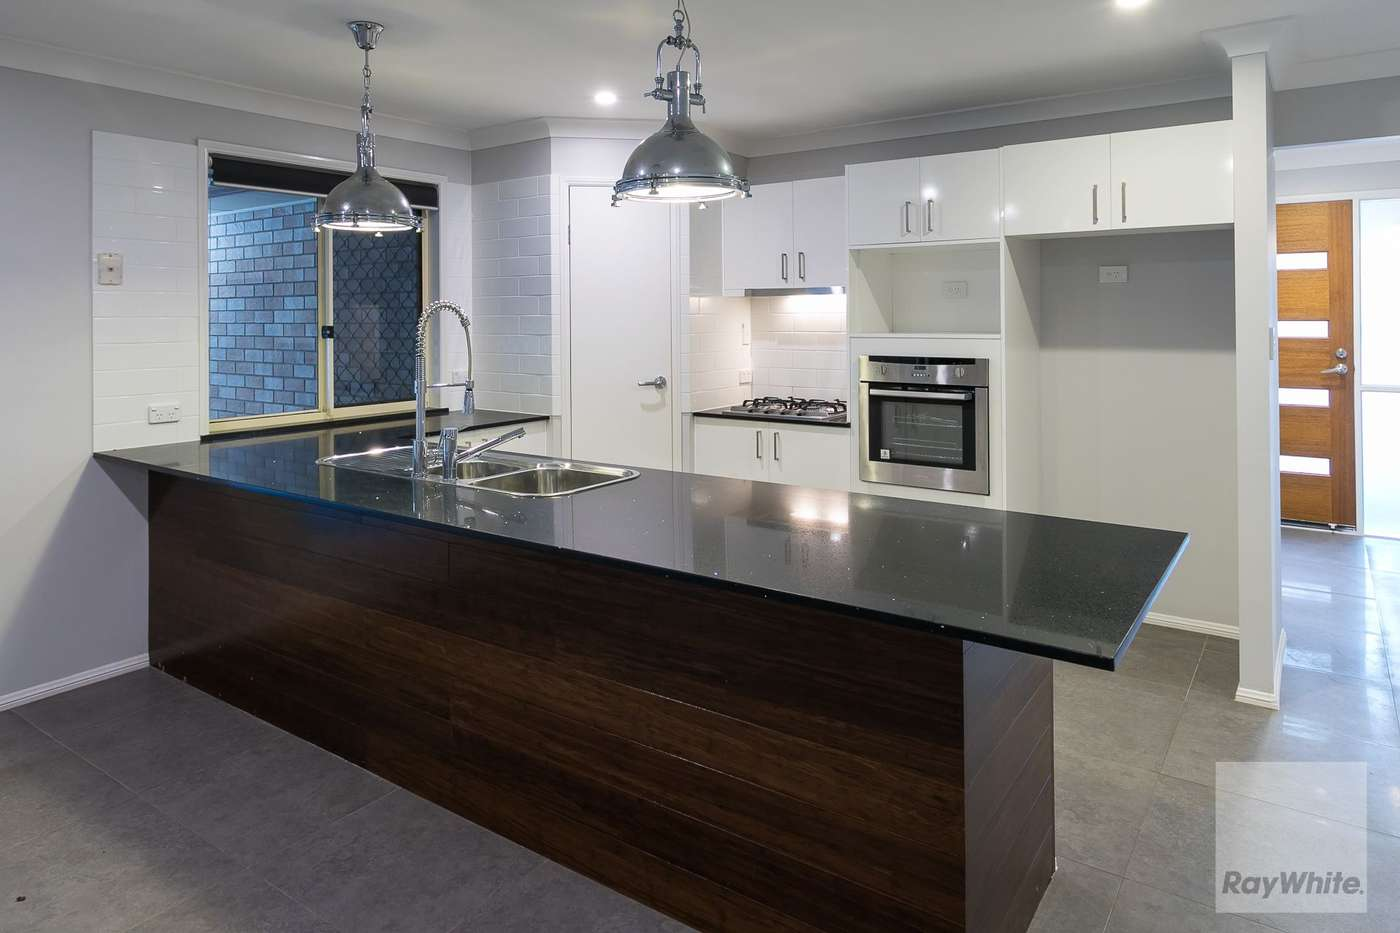 Main view of Homely house listing, 28 Glenbrook Avenue, Victoria Point, QLD 4165